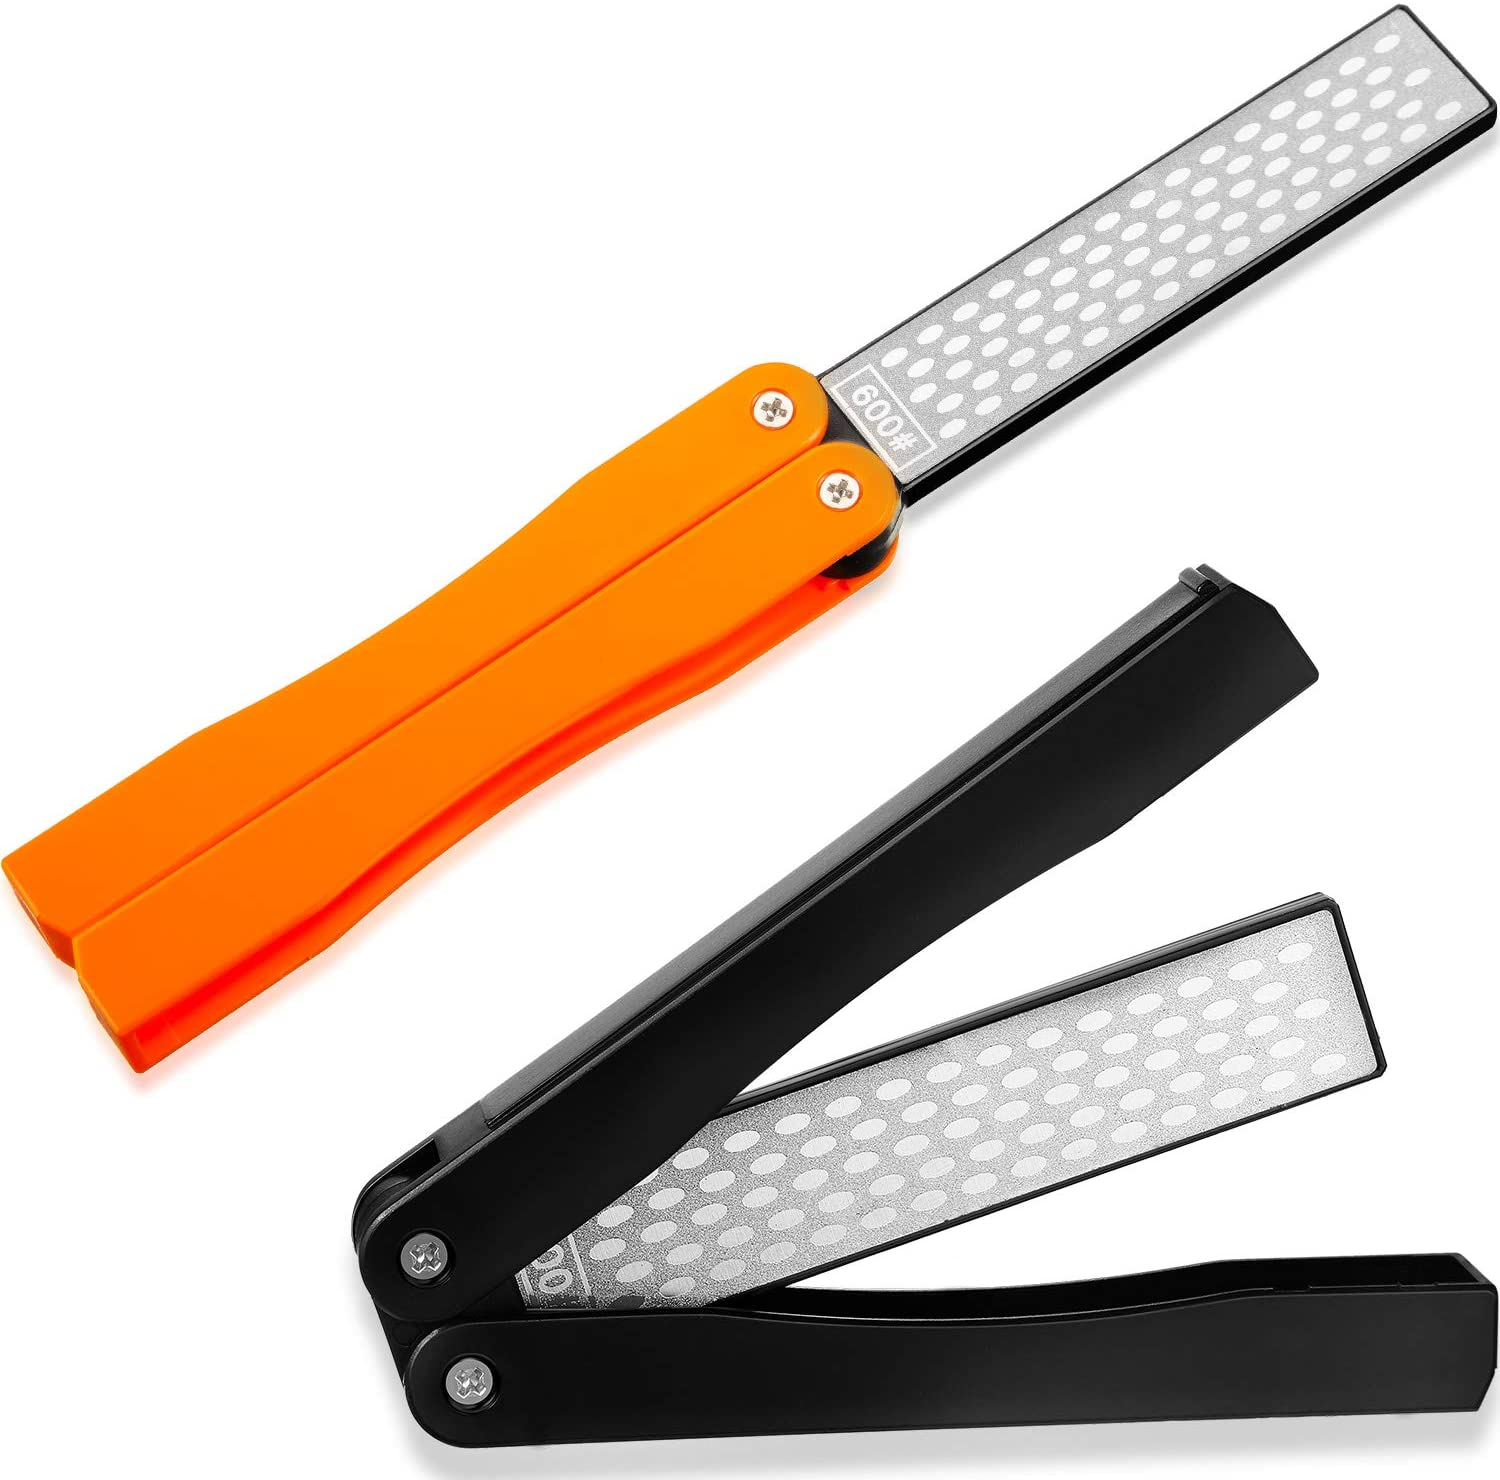 2 Pack Garden Tool Sharpener, Folding Pocket Diamond Knife Sharpener 400/600 Grit Double-Sided Scissor, Pruners, Loppers or Blade Sharpening Stone for Garden Outdoor Camping Kitchen